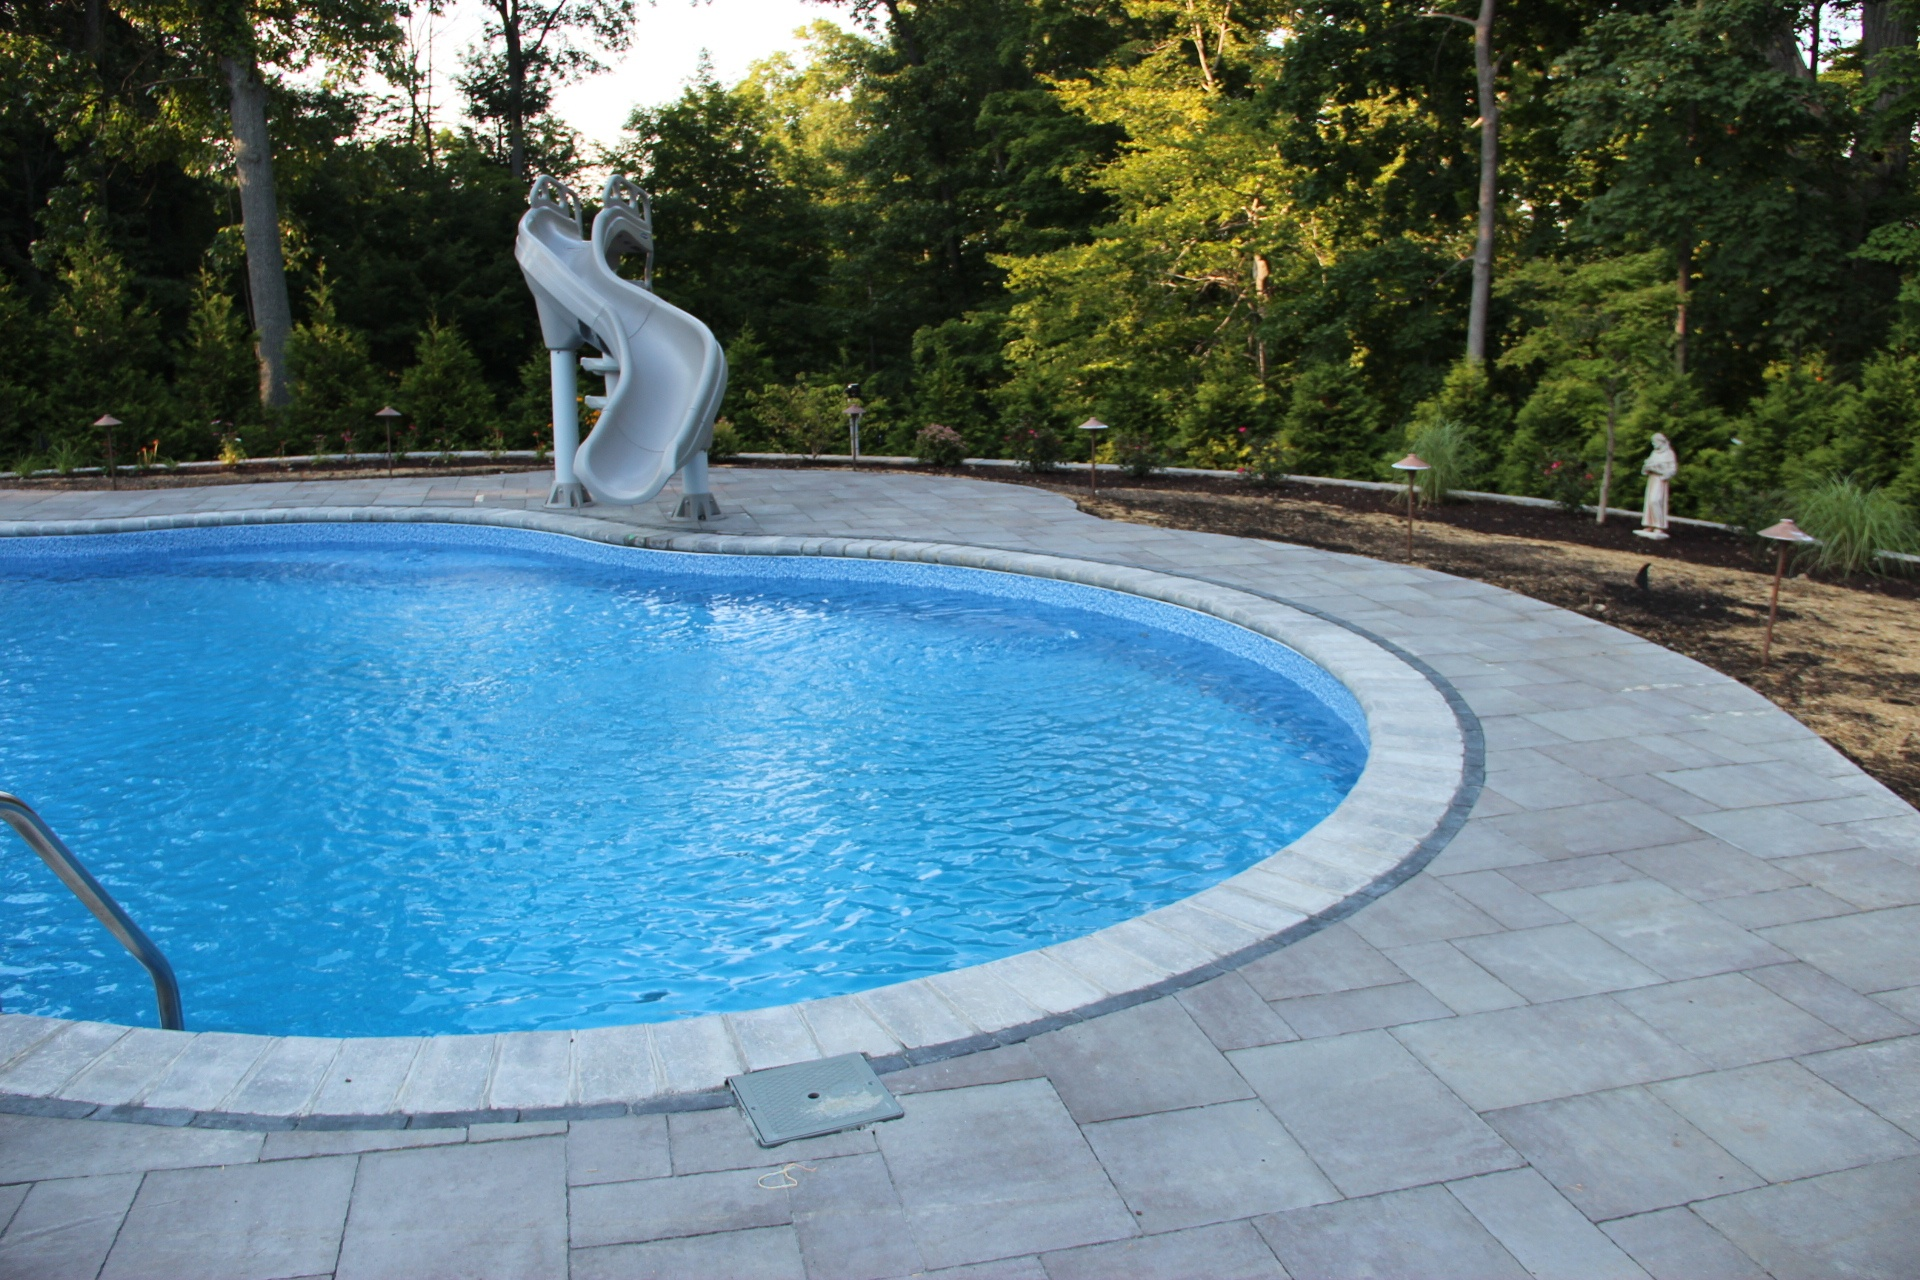 Expert landscape design with pool deck in Mt. Kisco, NY